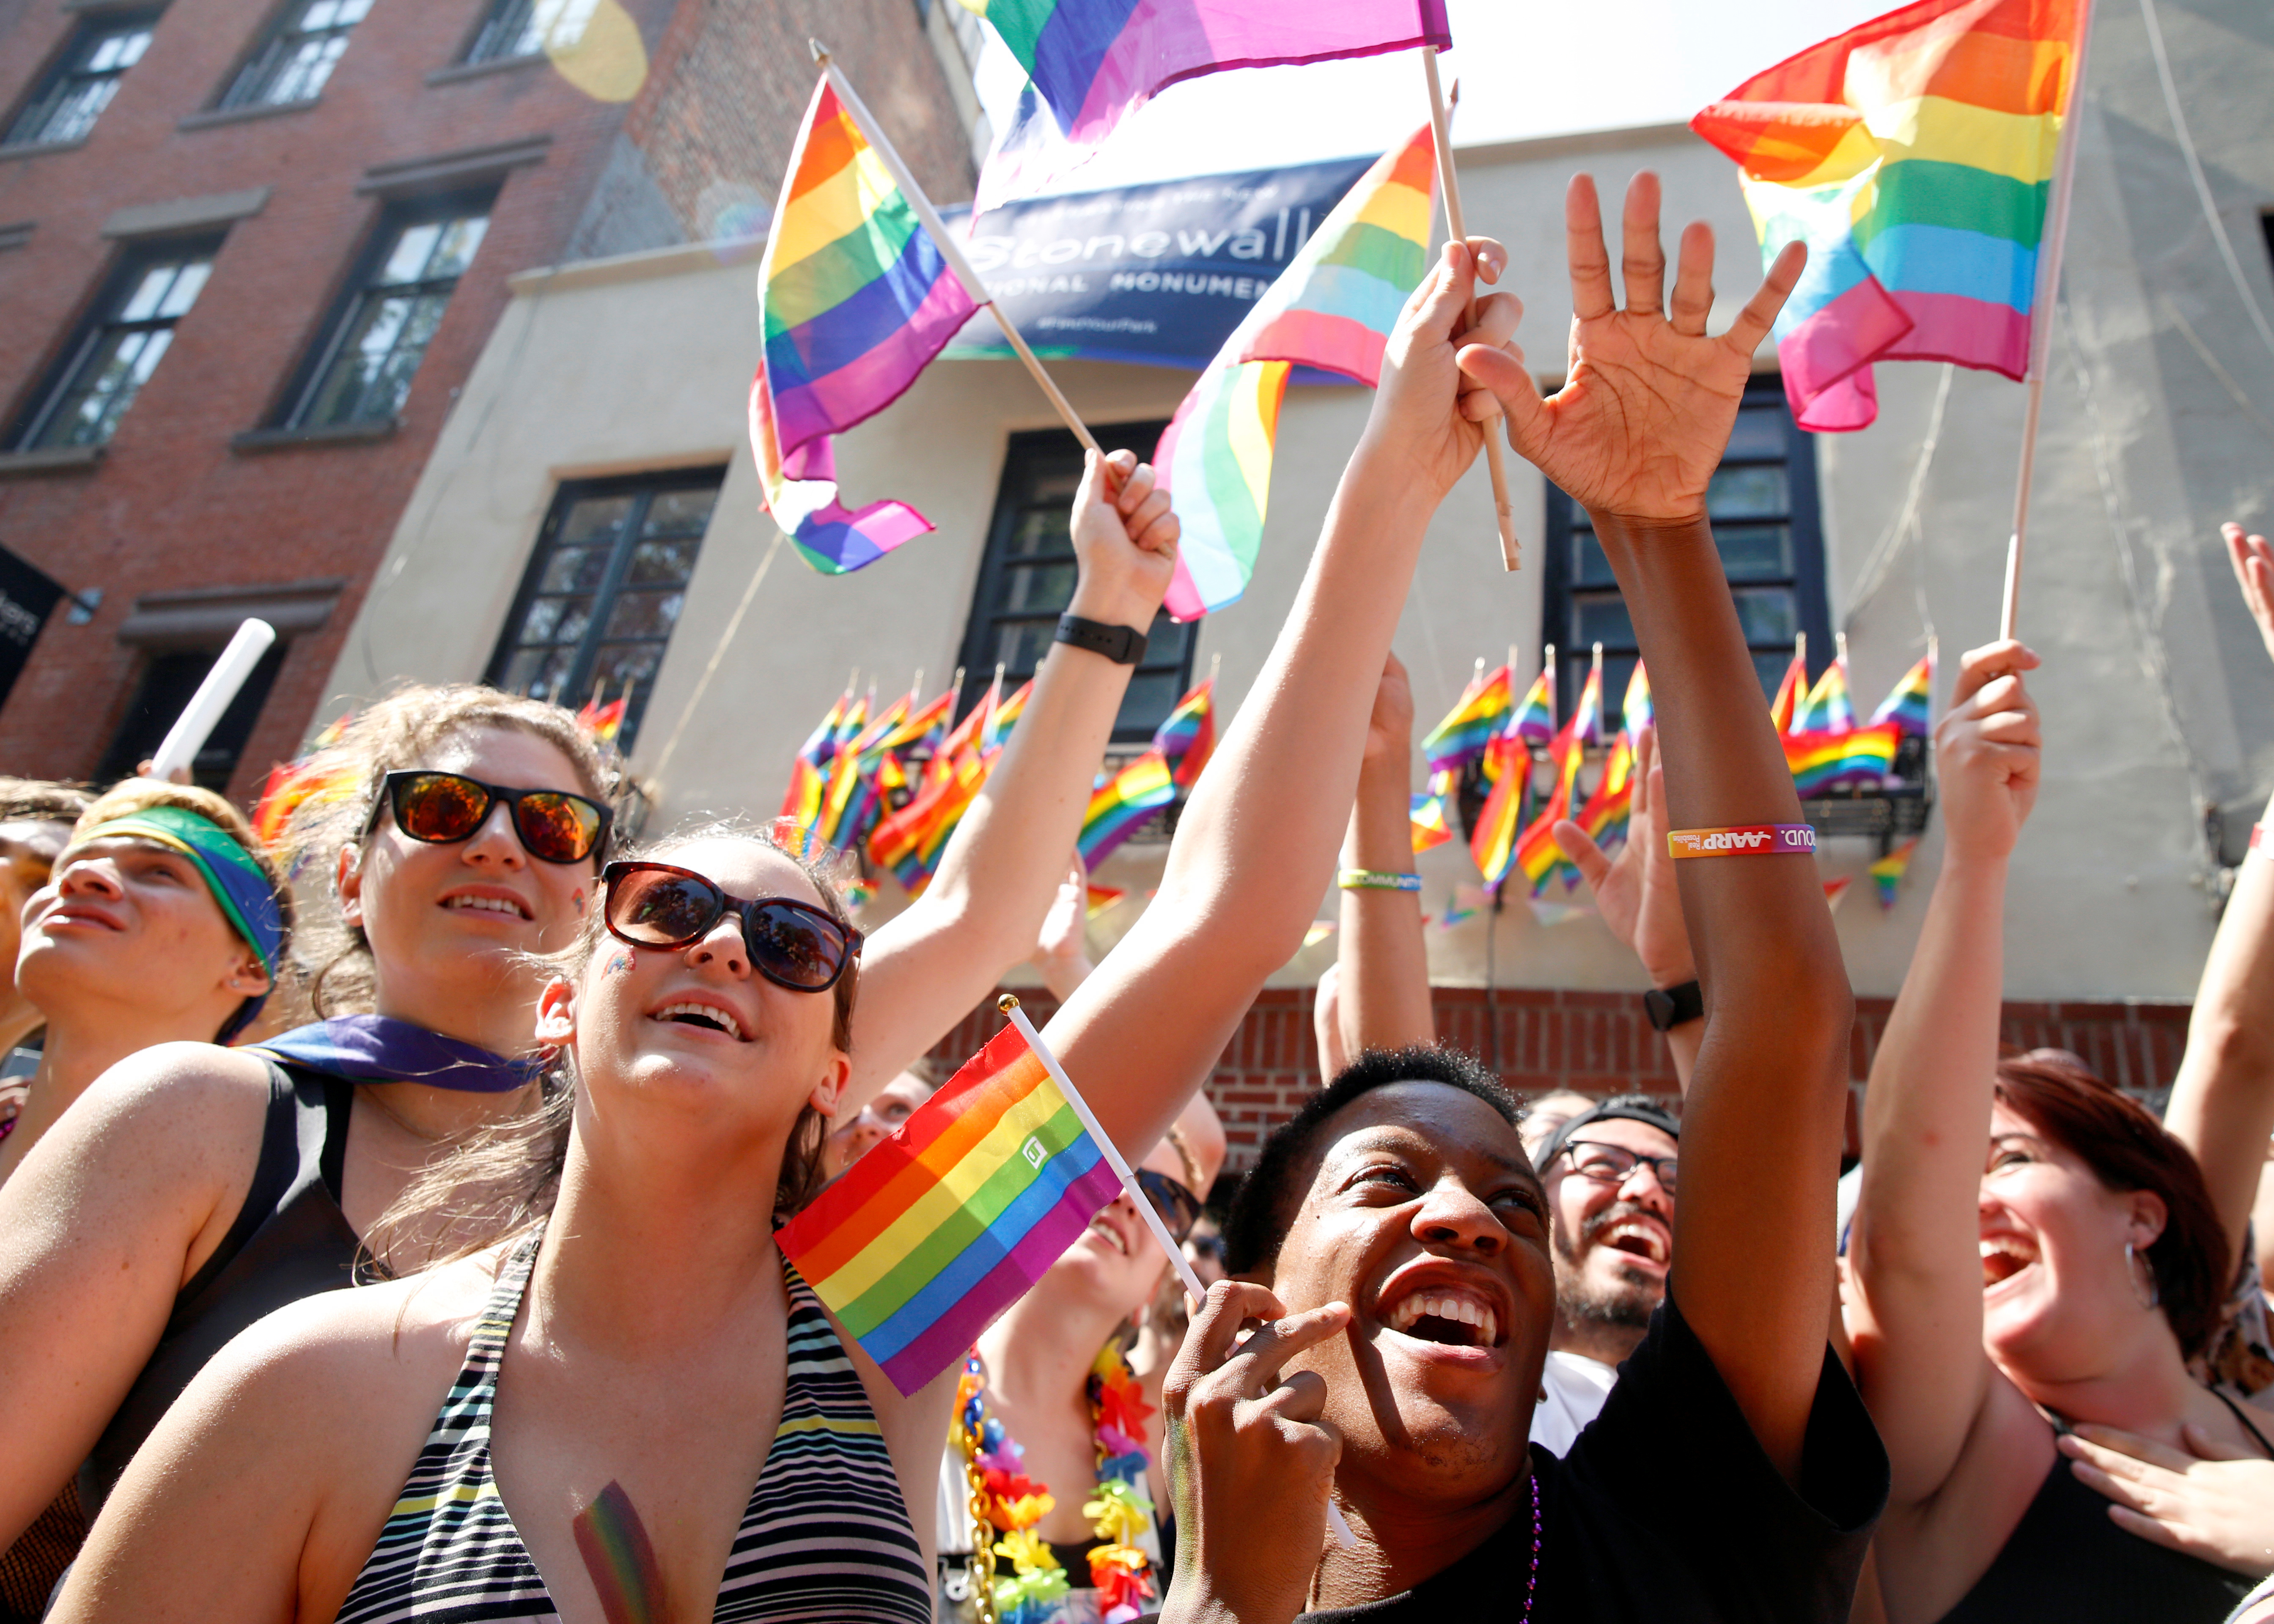 qz.com - Sangeeta Singh-Kurtz - The rise in Americans saying they are bisexual is driven by women